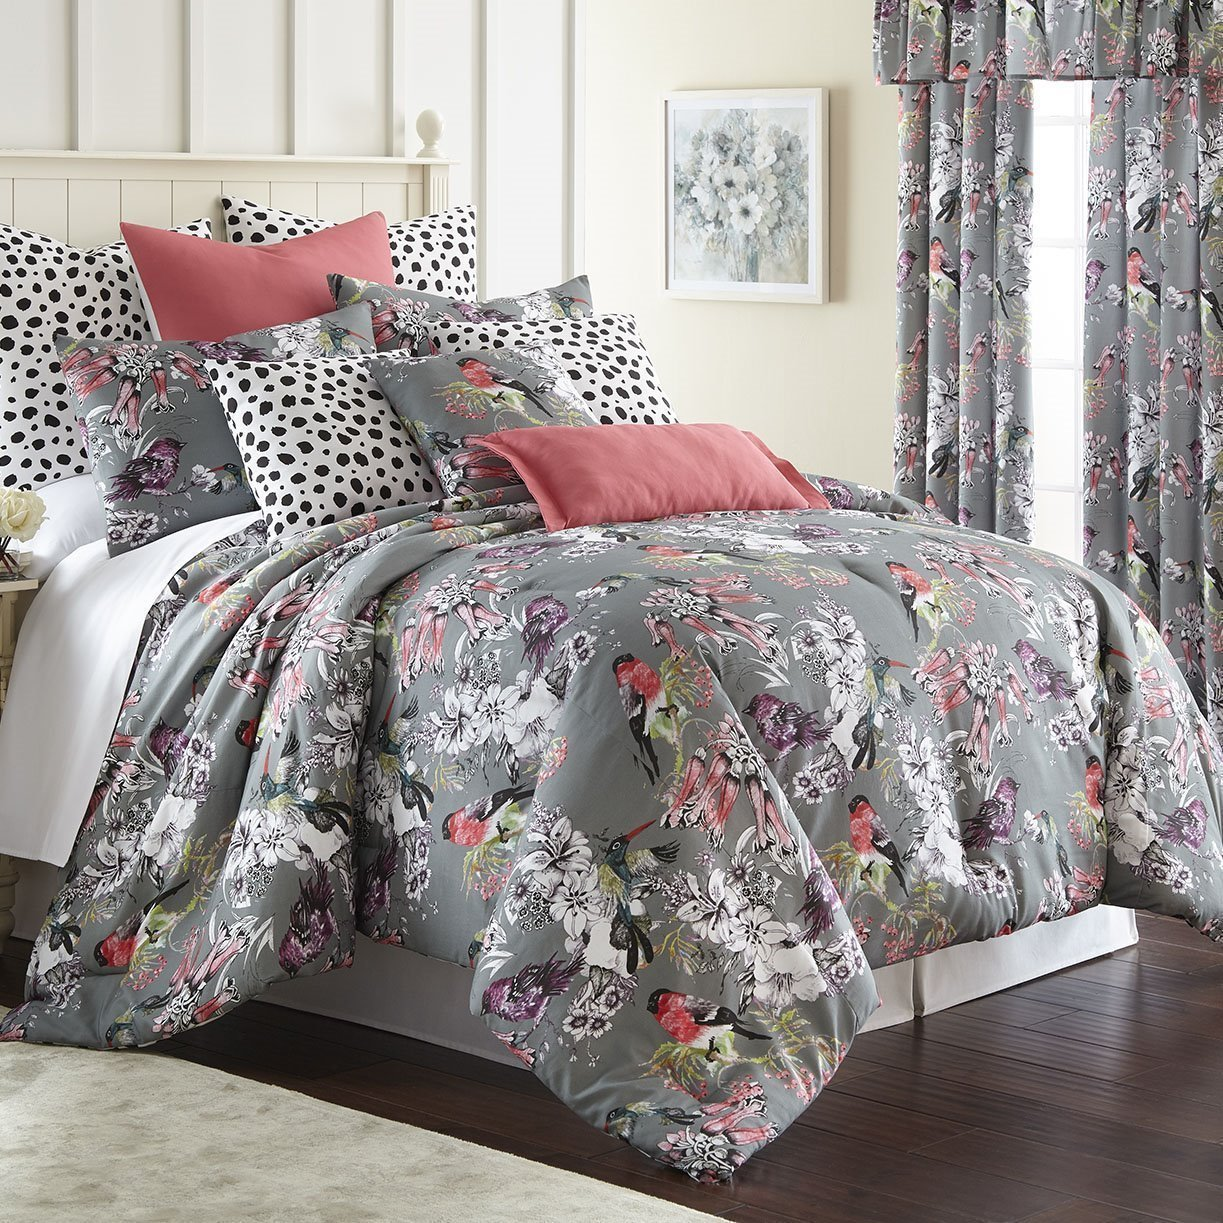 Birds In Bliss Duvet Cover Set Full Size